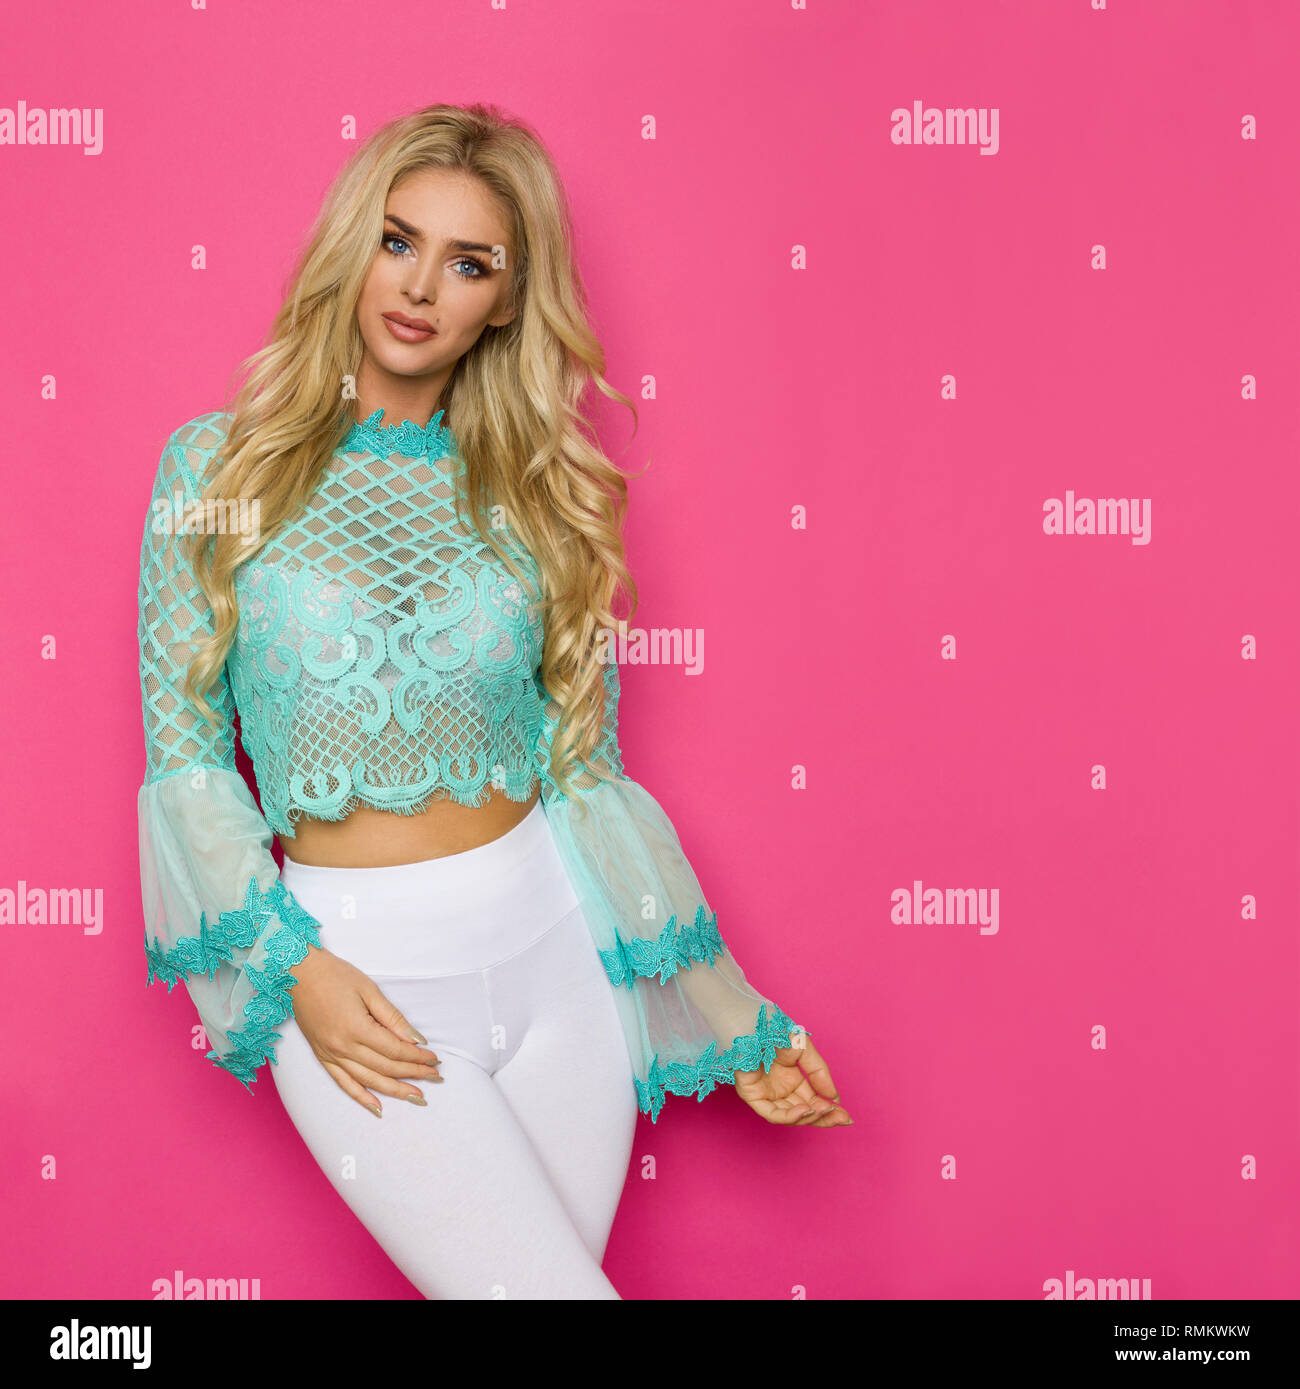 fd65825043c0b Beautiful blond woman in turquoise lace blouse and white leggings is posing  on pink background. Three quarter length studio shot.